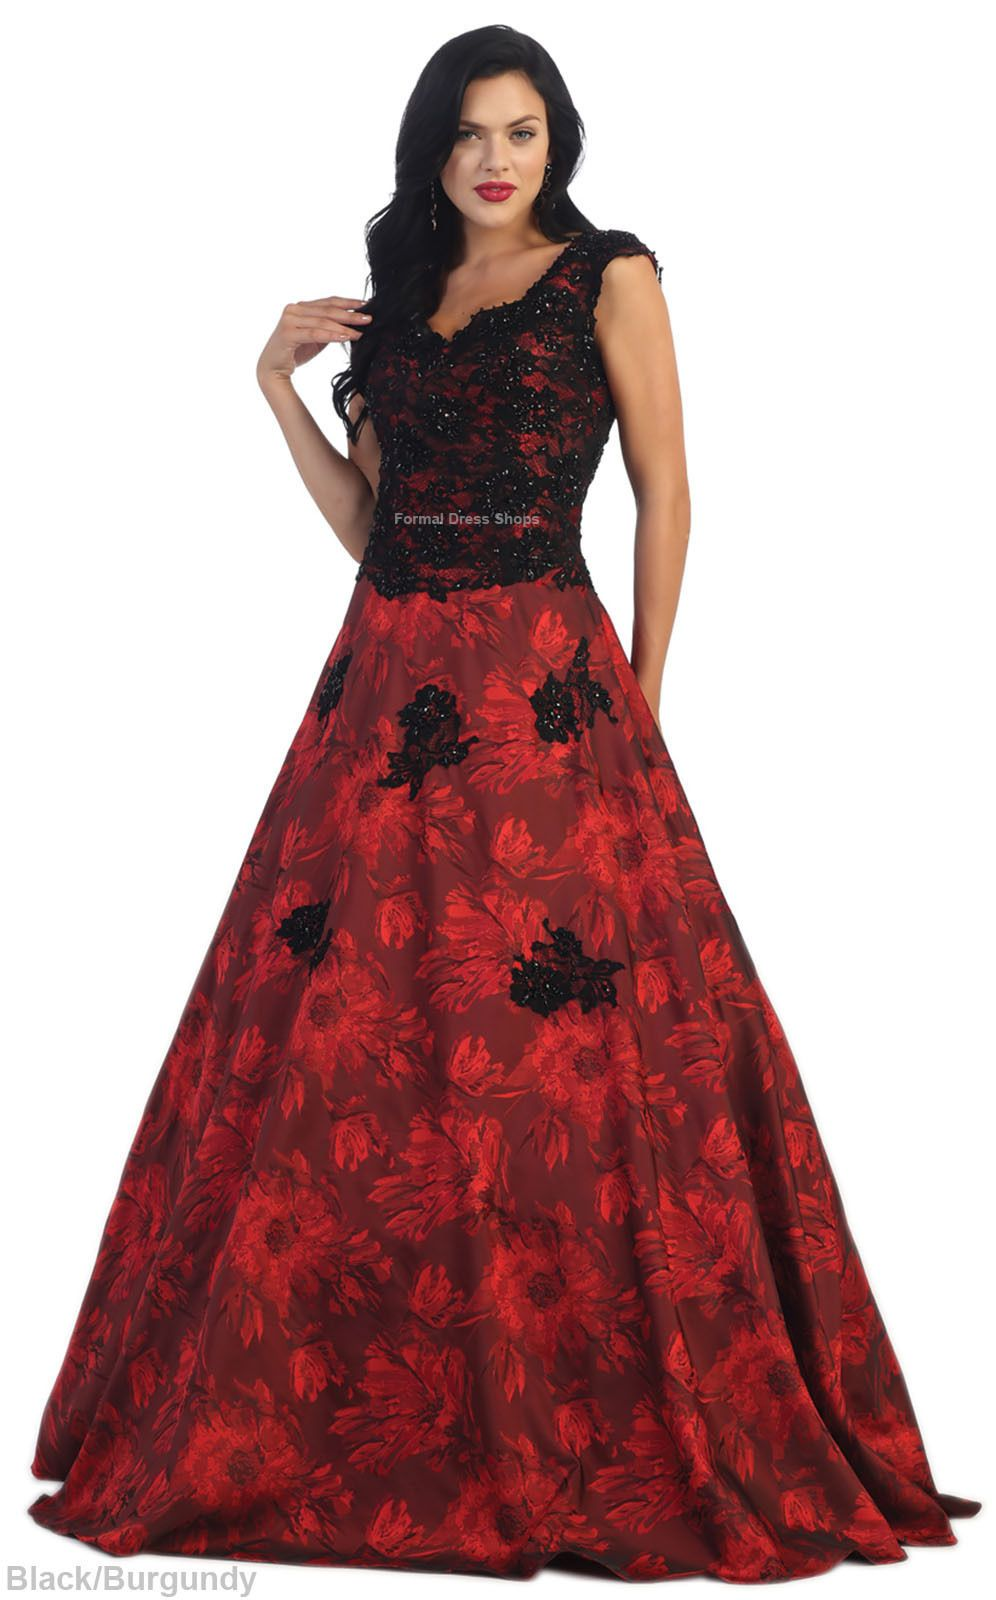 Awesome great cap sleeve red carpet evening gown pageant prom formal